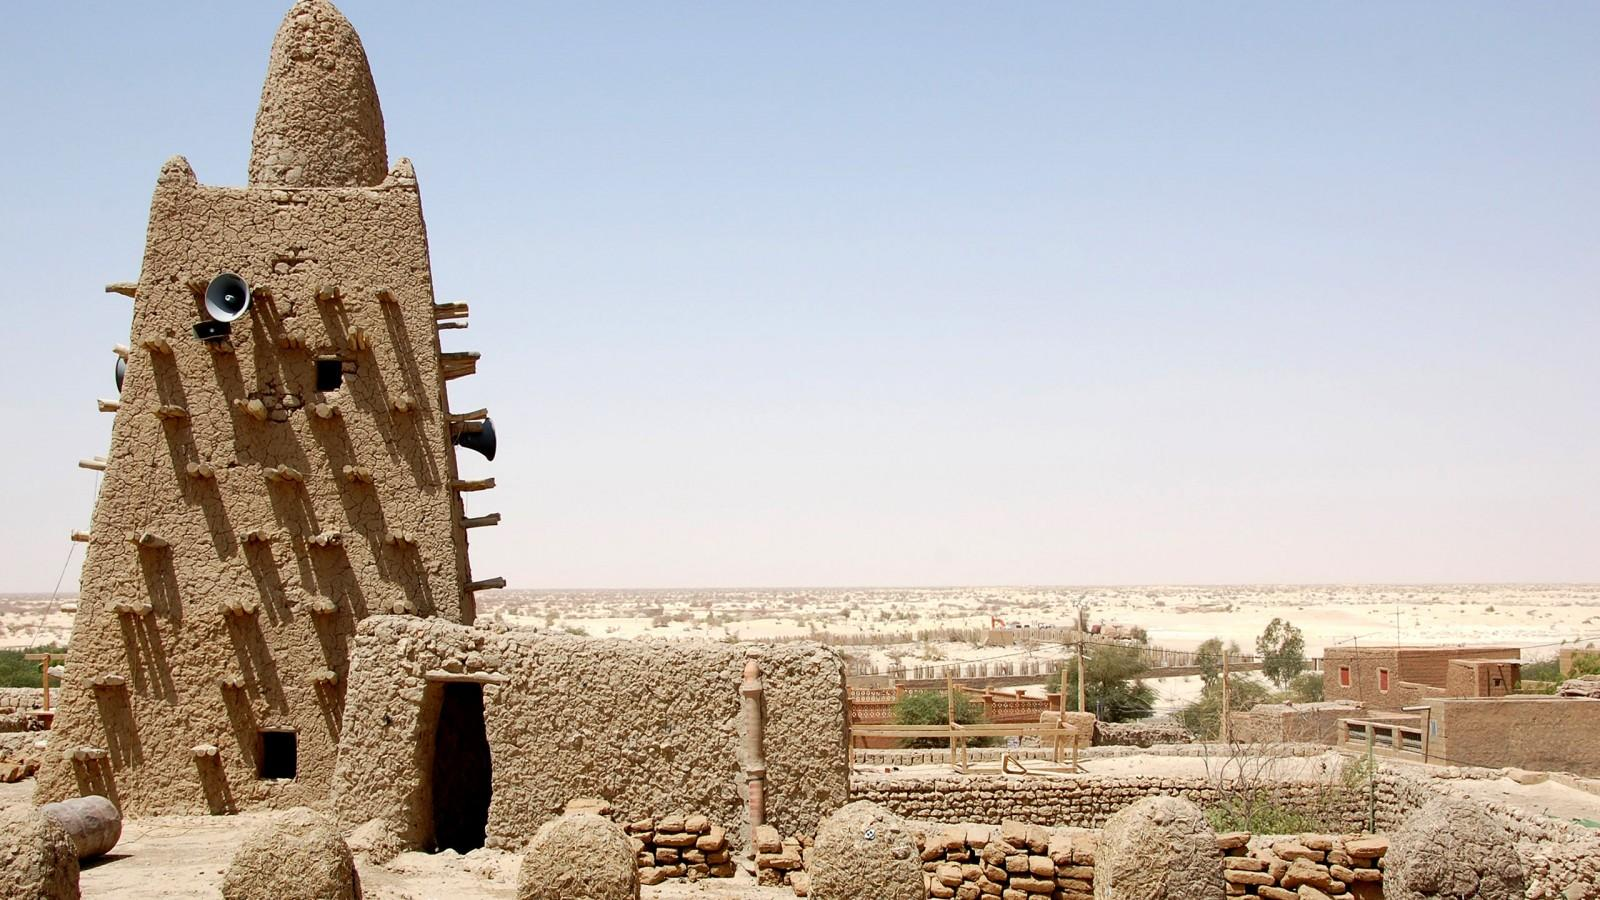 Timbuktu City View Wallpapers – Travel HD Wallpapers